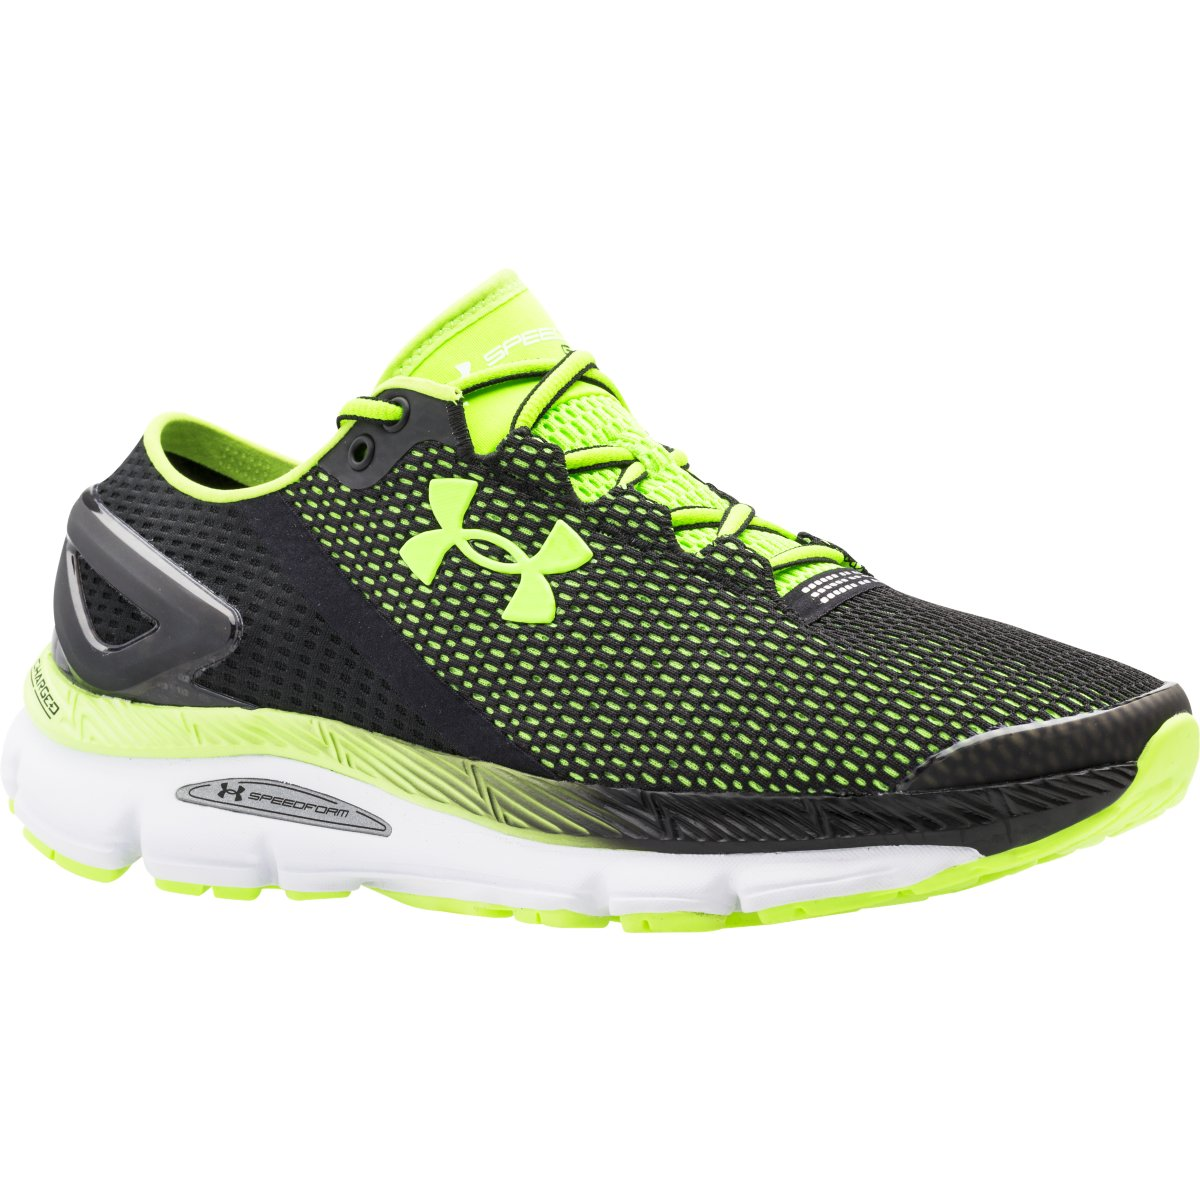 Wiggle | Under Armour Speedform Gemini 2.1 Shoes (AW16) | Cushion ...